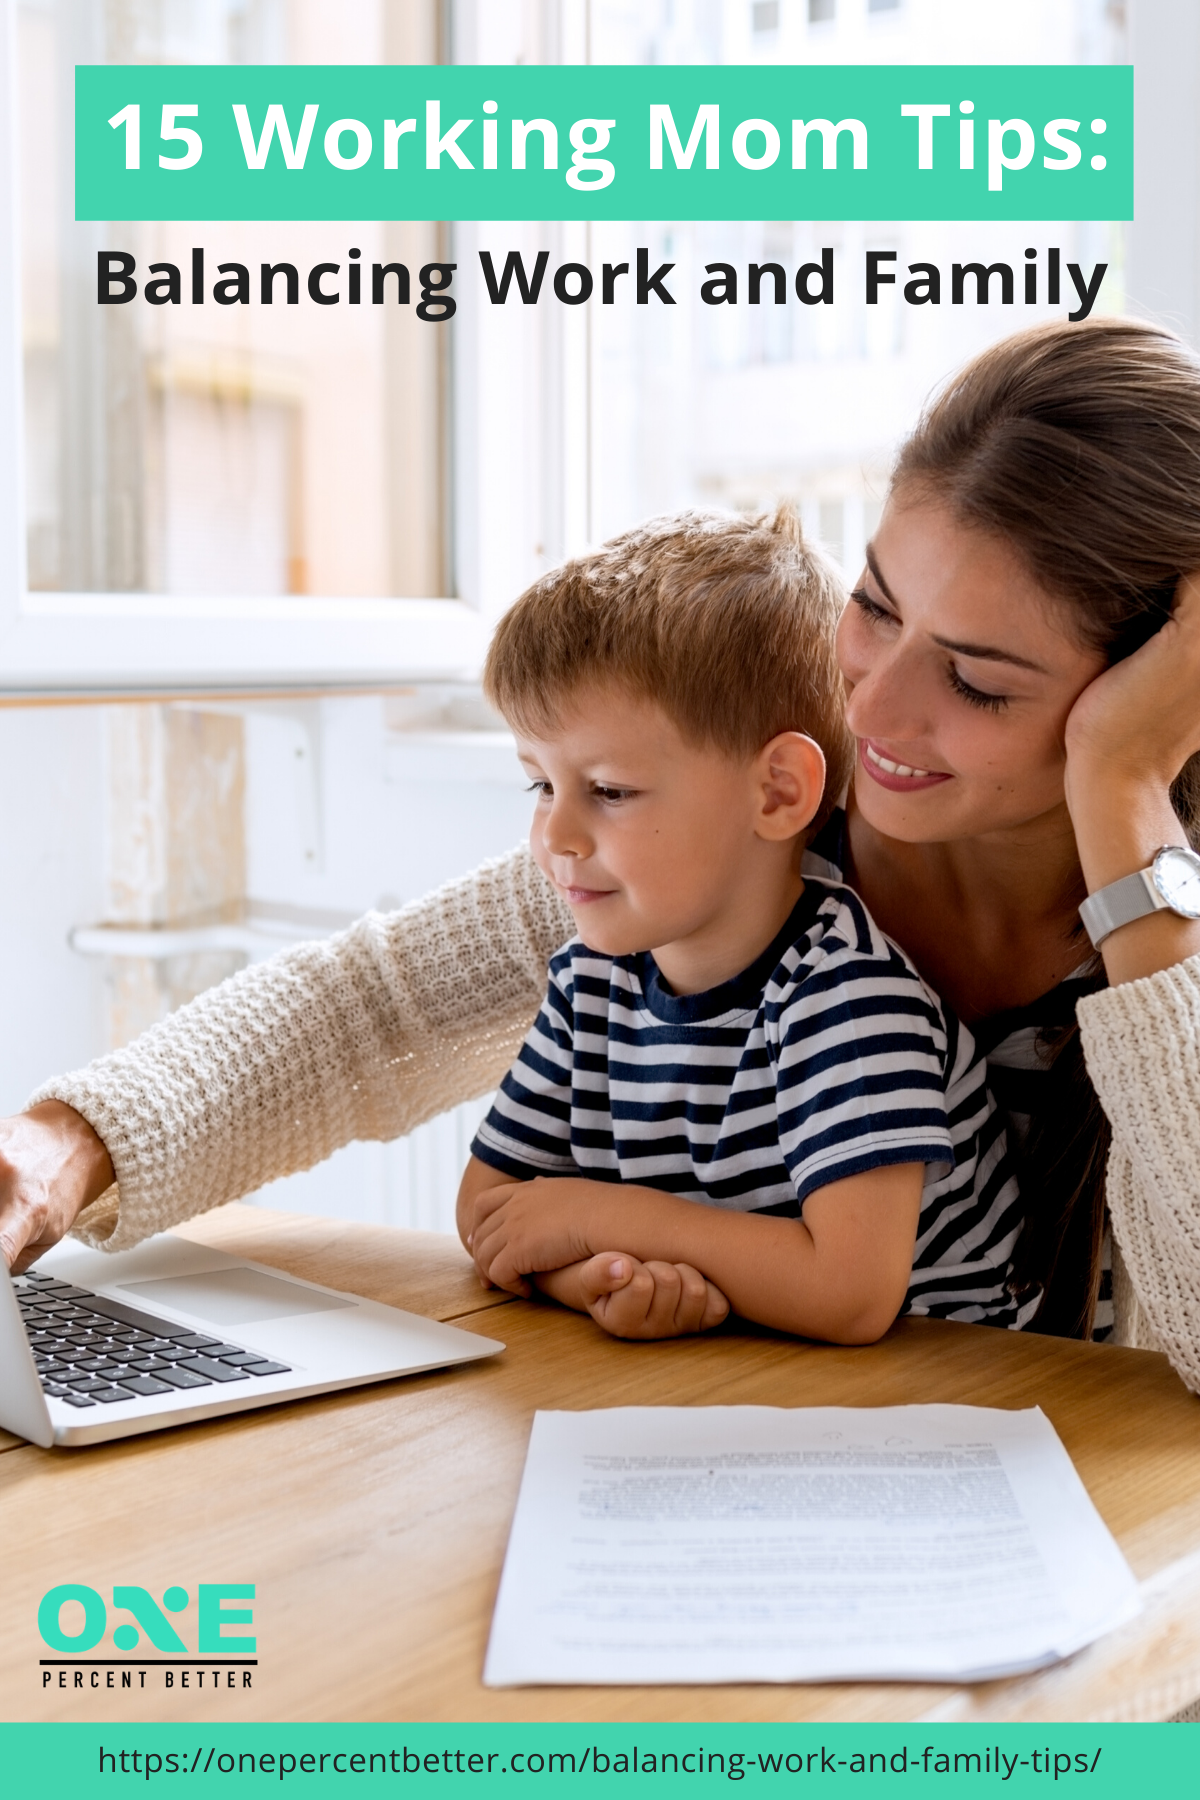 15 Working Moms Tips: Balancing Work and Family https://onepercentbetter.com/balancing-work-and-family-tips/